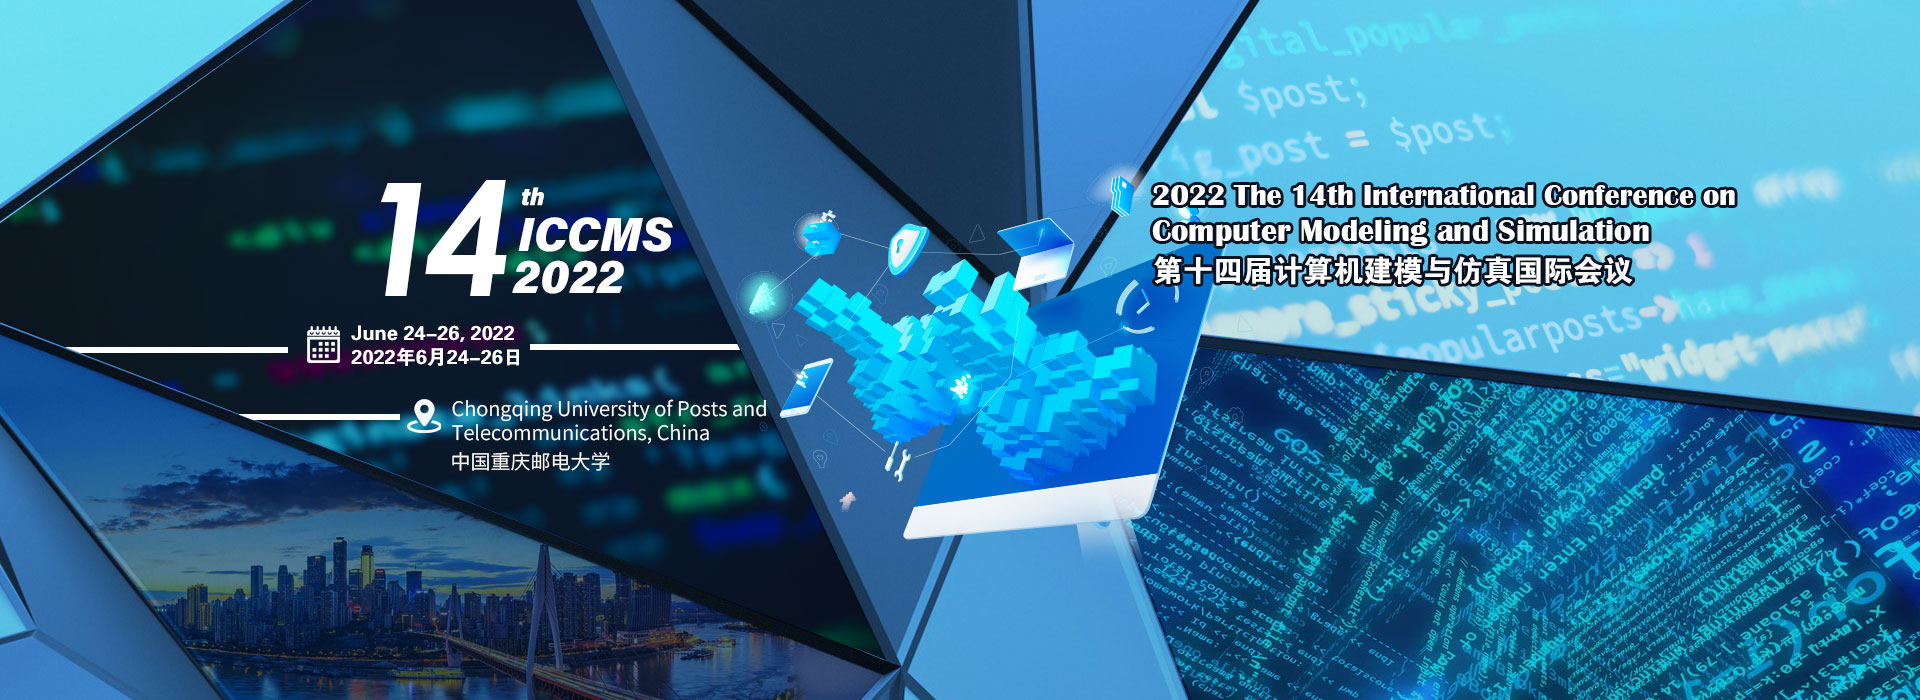 International Conference on Computer Modeling and Simulation